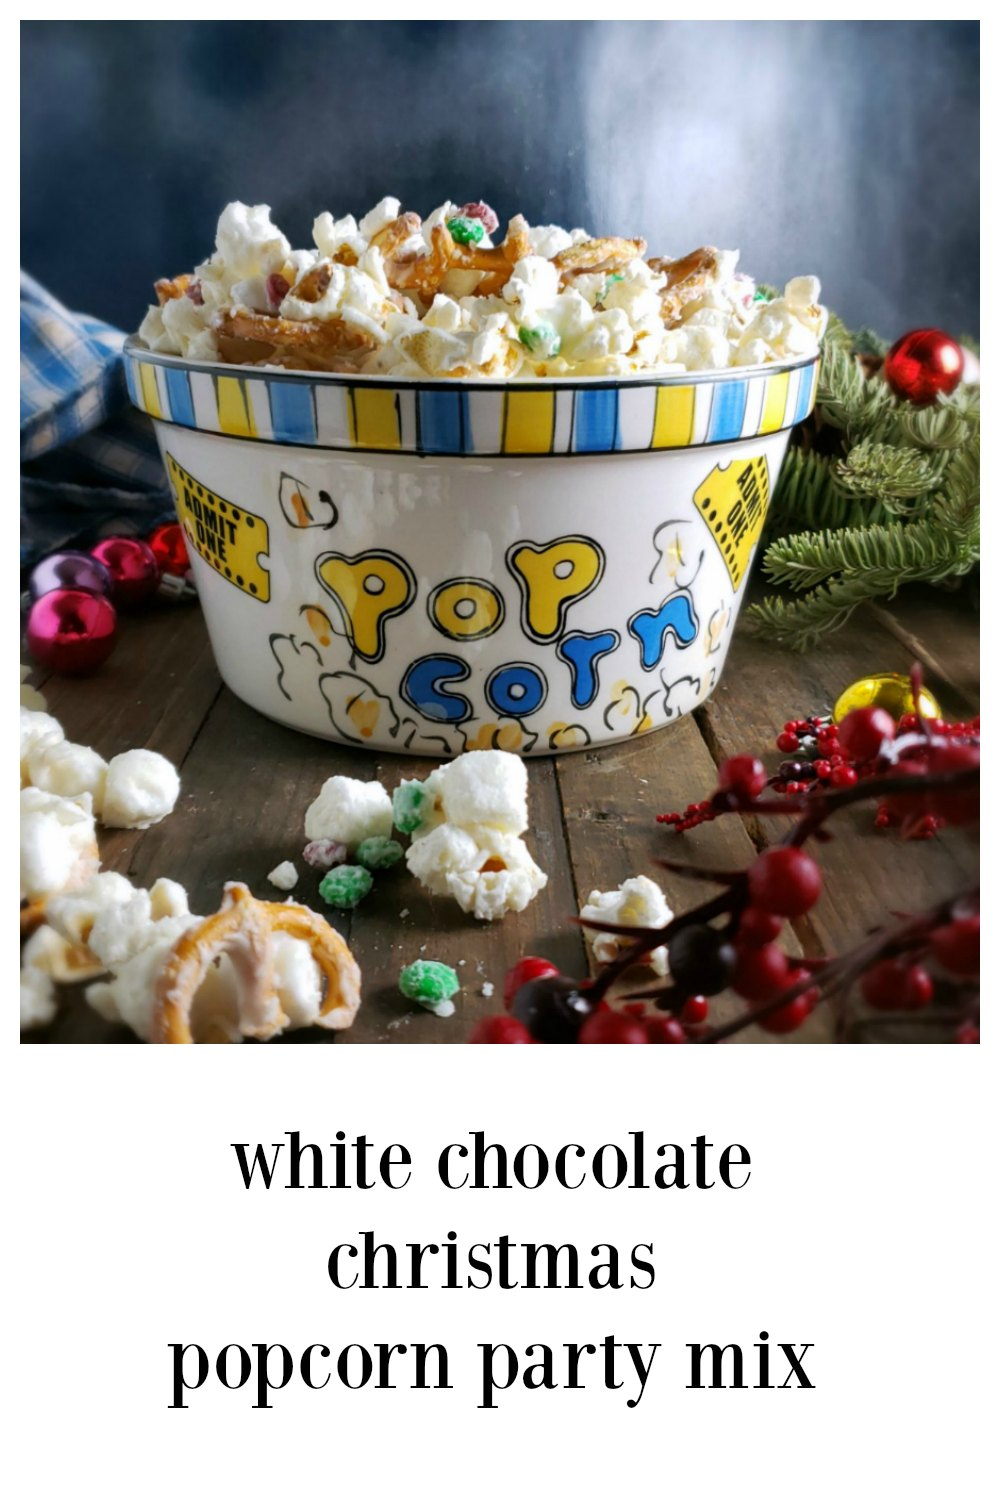 White Chocolate Christmas Popcorn Party Mix. It's Christmas magic. Crispy, chewy, gooey, sweet, double chocolatey and salty all at once. Crave-worthy! Perfect Last-Minute Party or Gift Option! #ChristmasPopcorn #WhiteChocolatePopcornMix #WhiteChocolateM&MsPartyMix